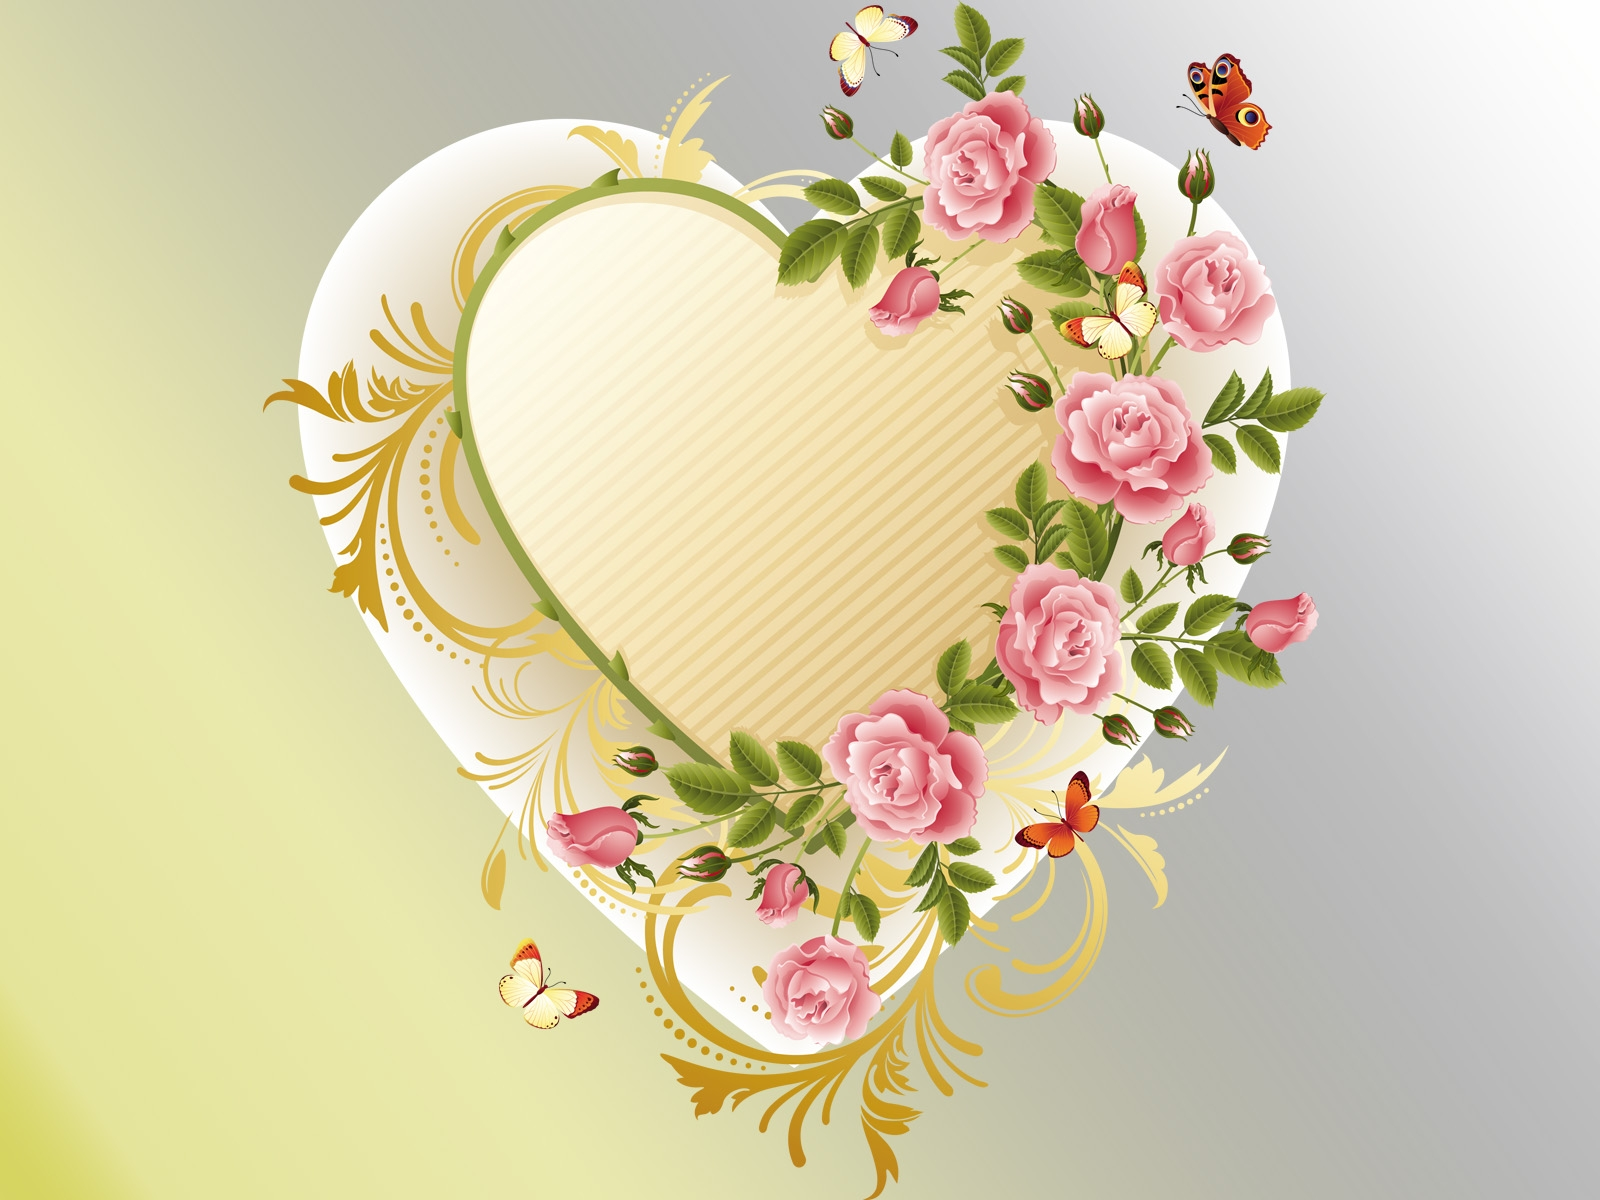 awesome heart rose download